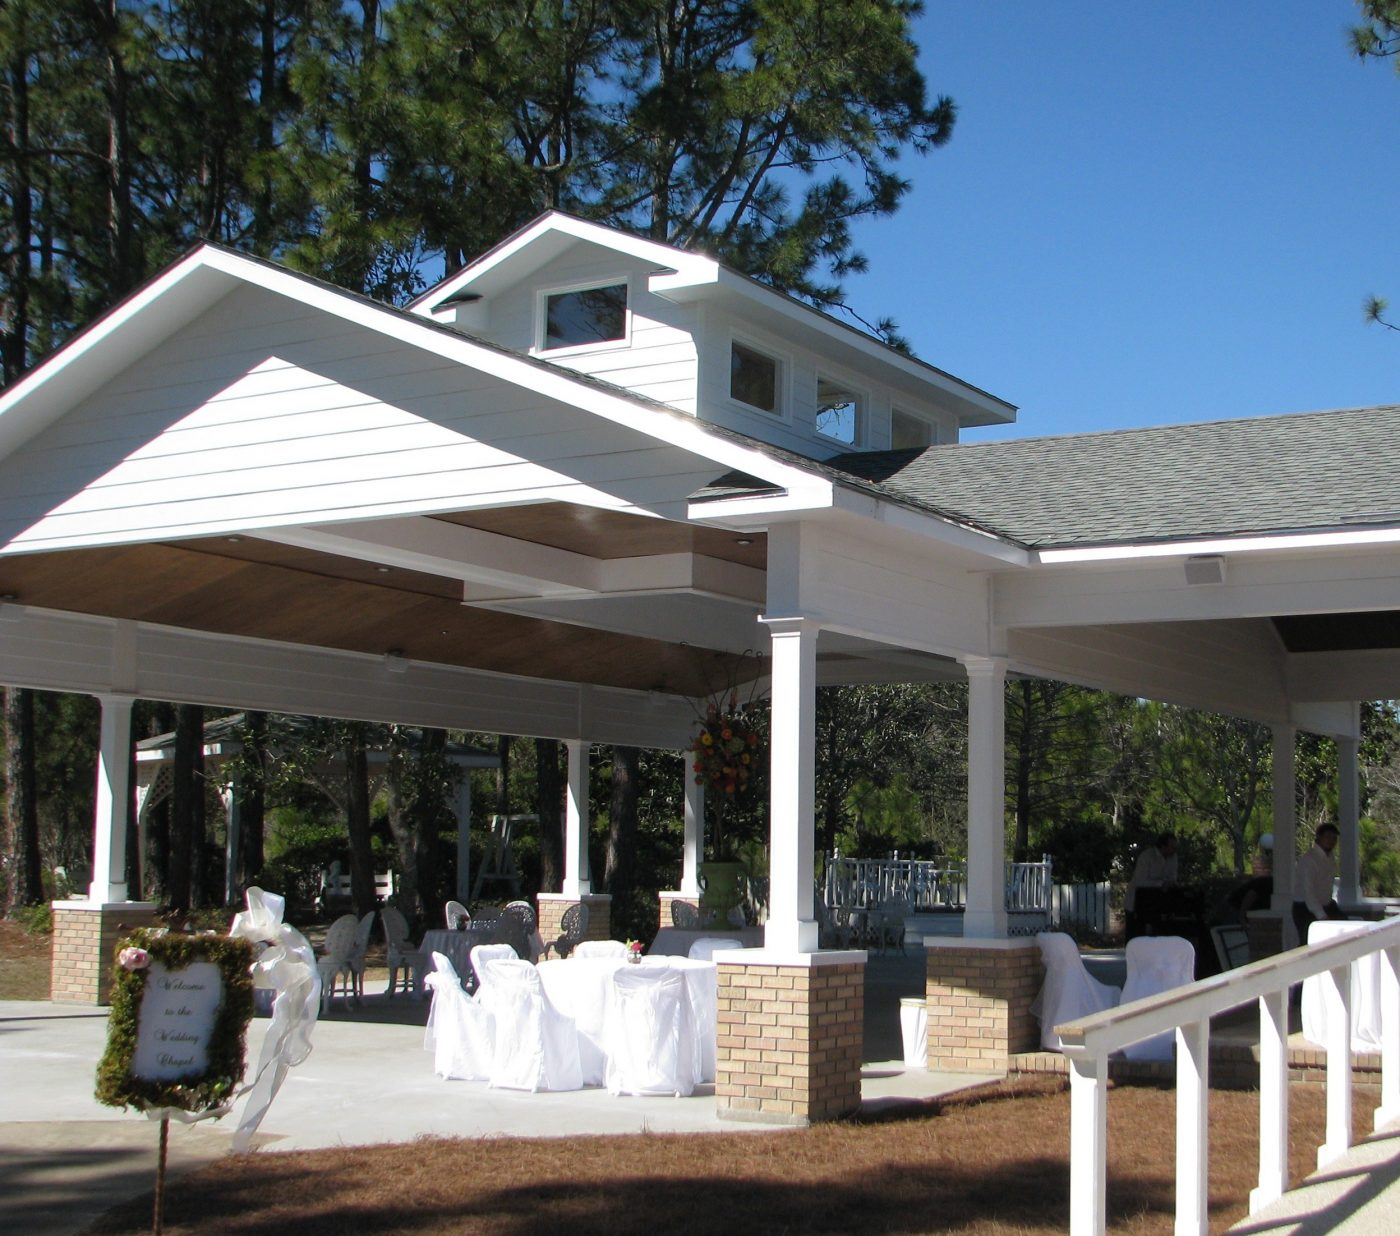 Wedding Chapel Pavilion